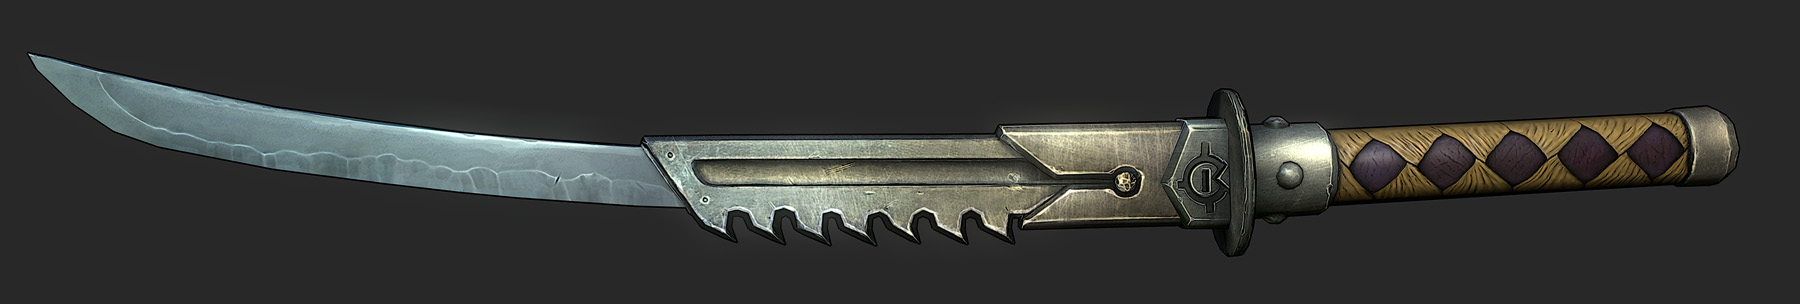 Game Art - weapons. update 16th december